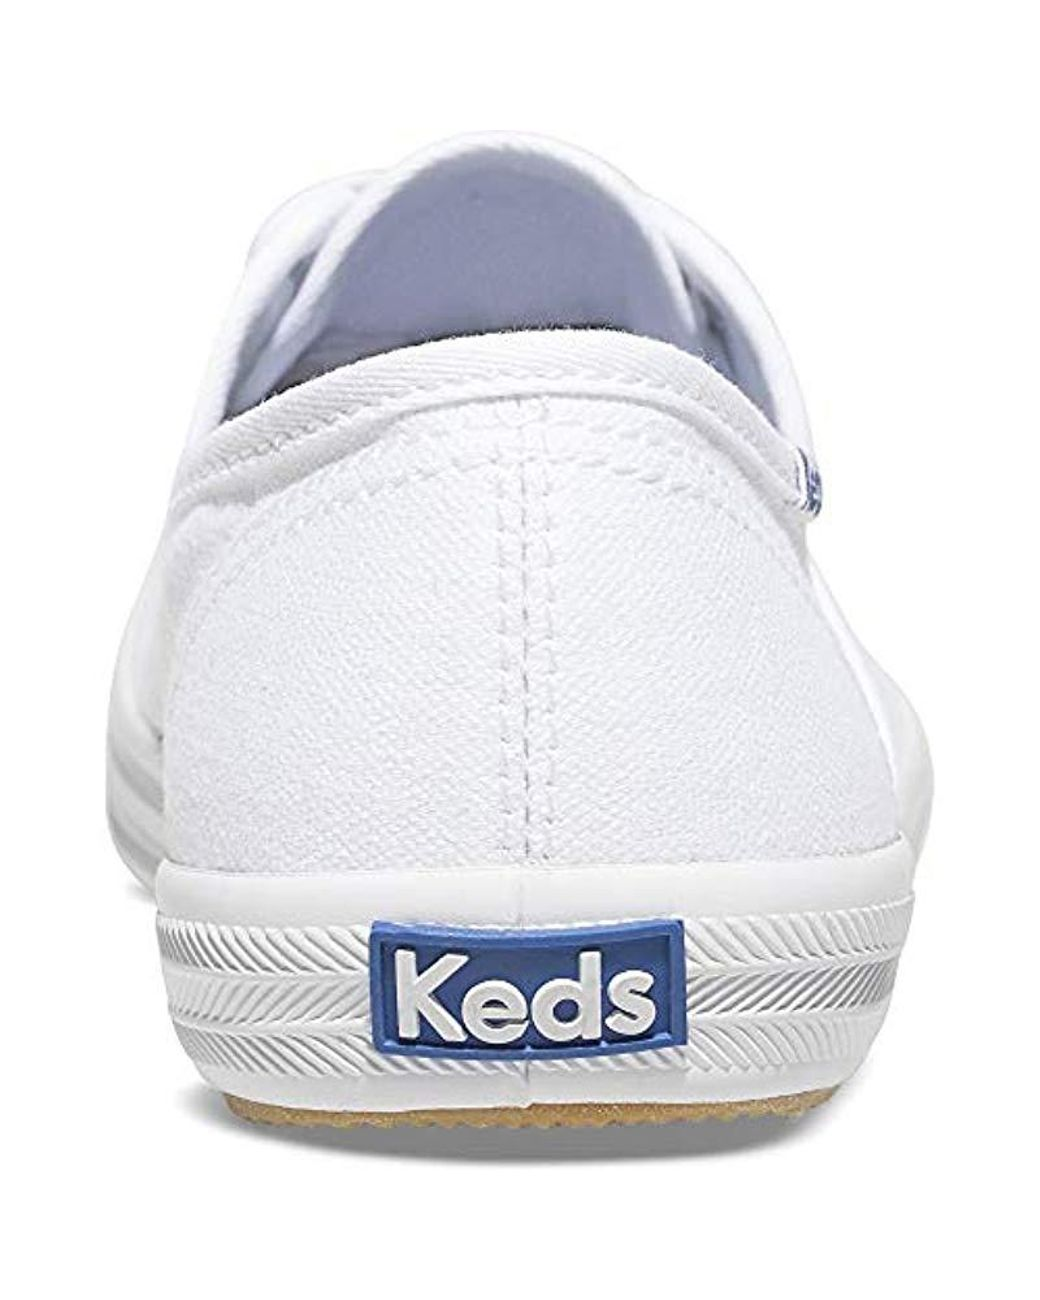 914a06dae4a Lyst - Keds Champion Original Canvas Sneaker in White